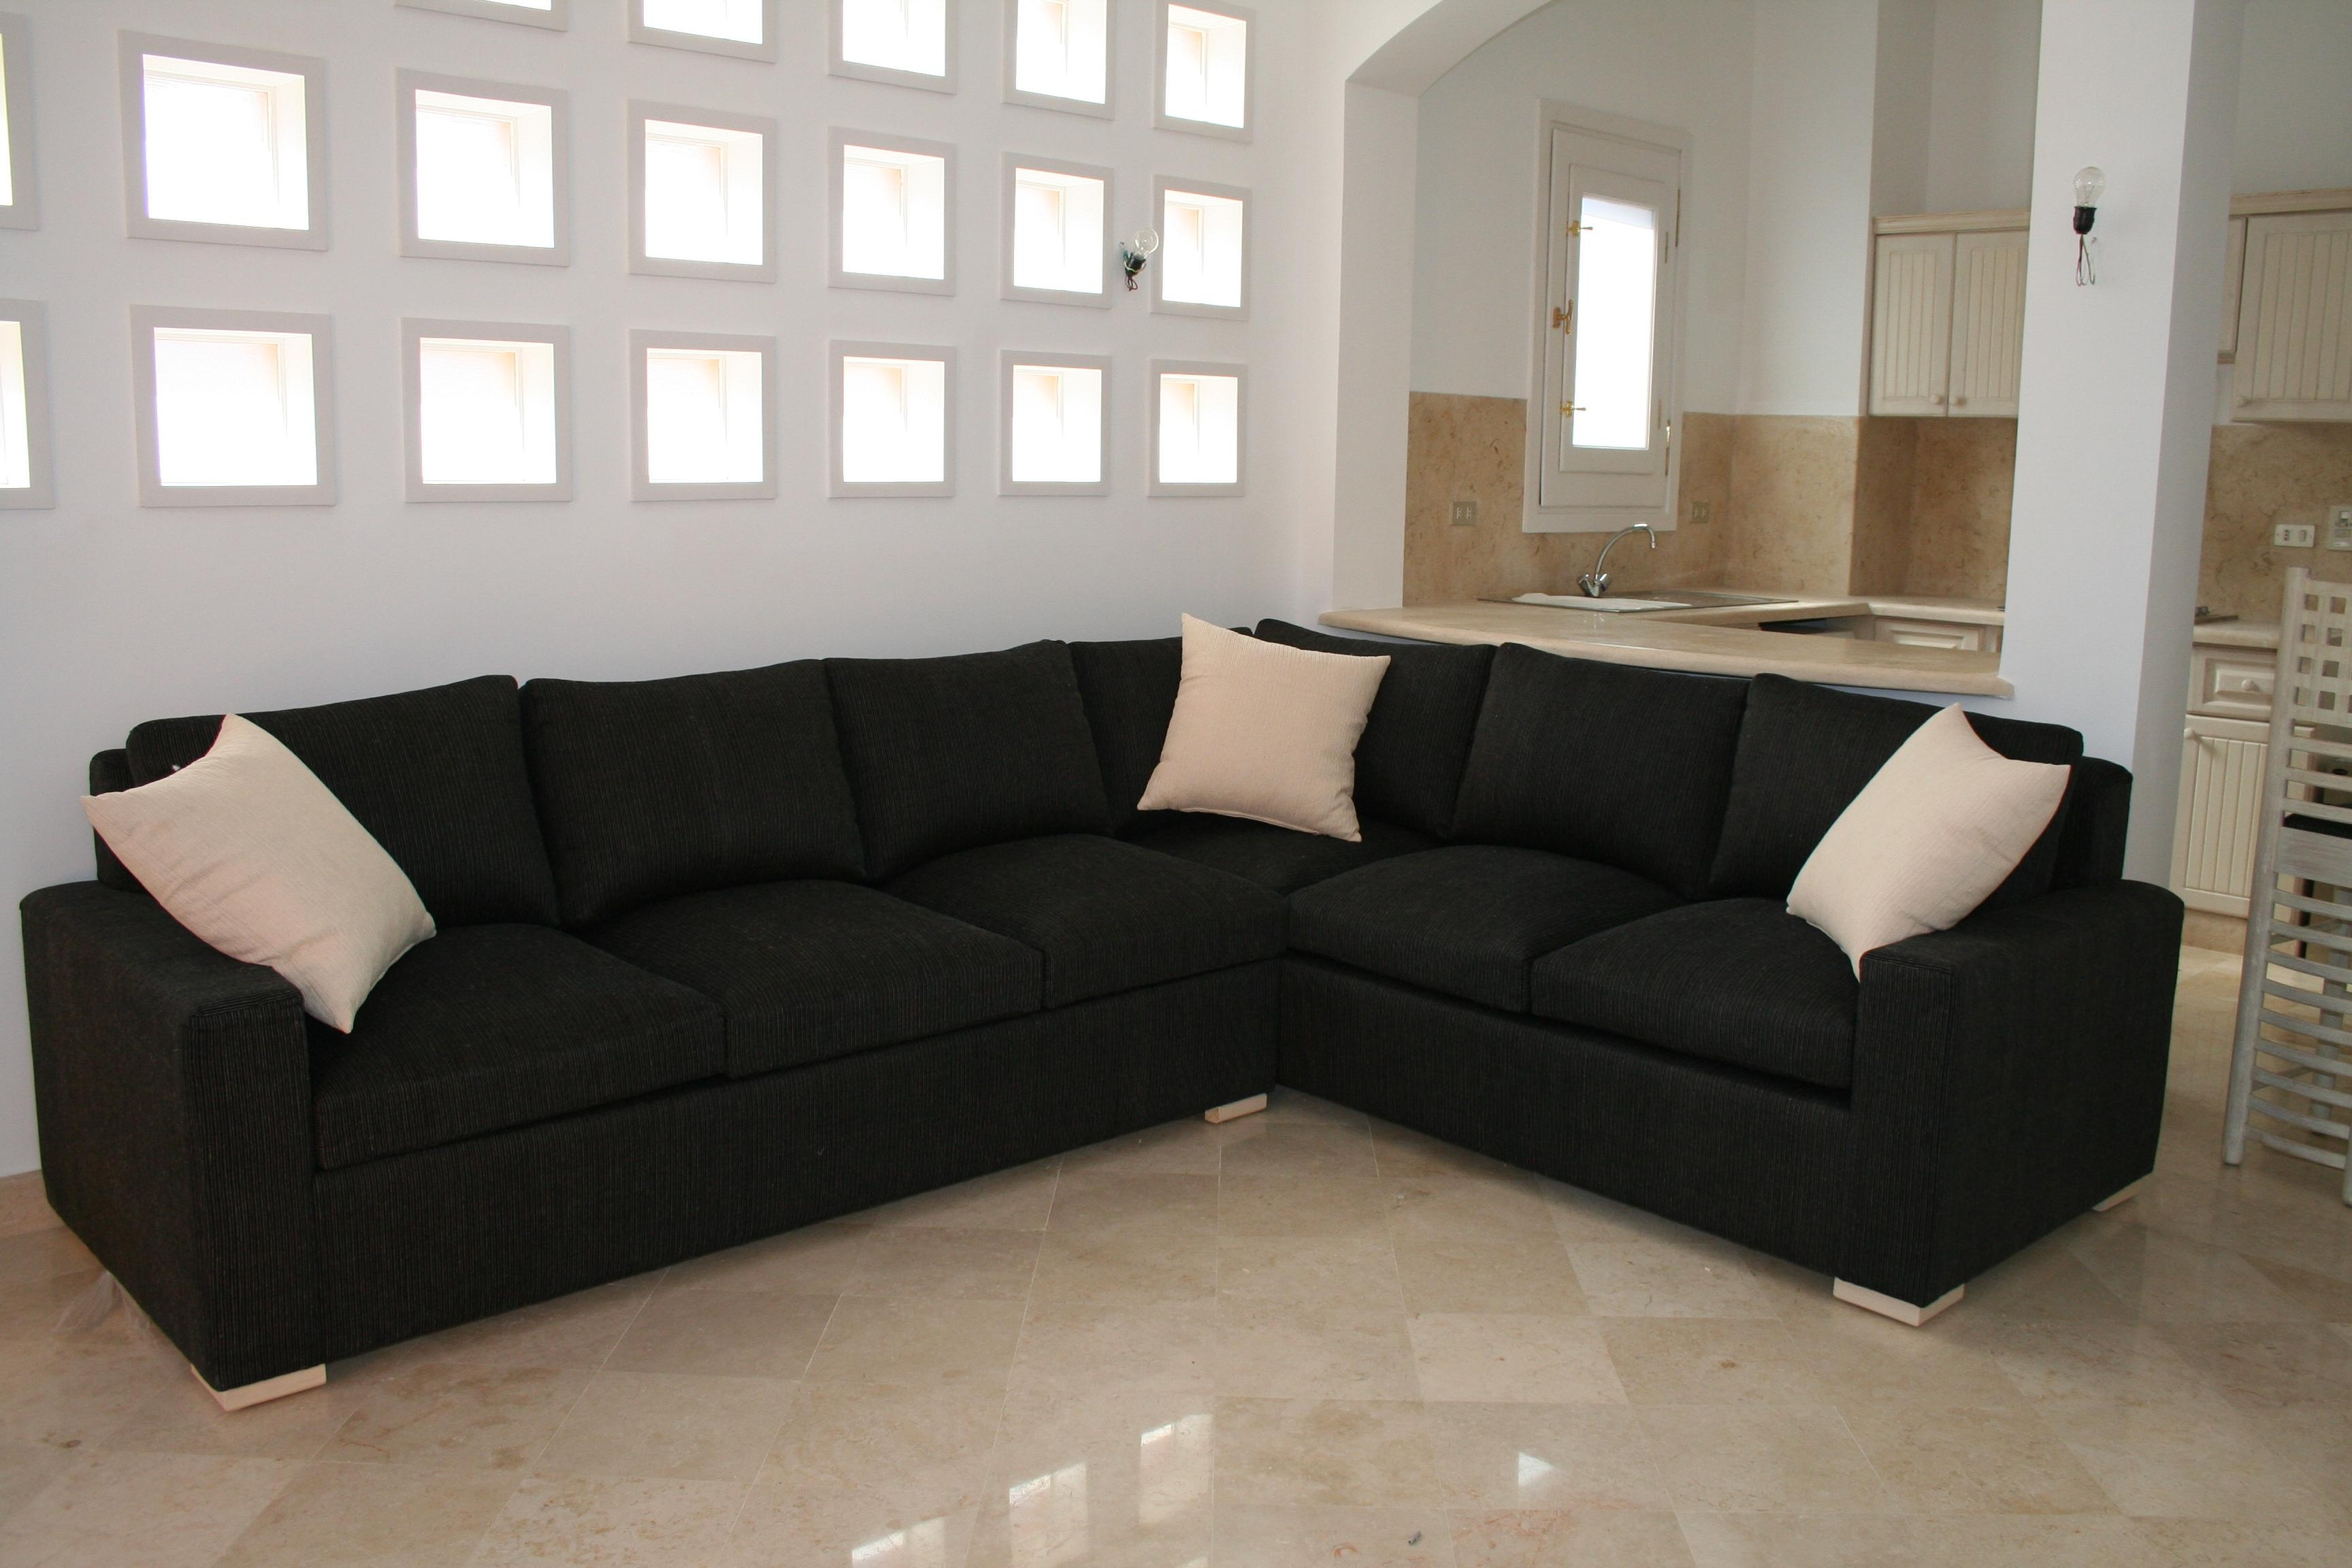 Small L Shaped Sofa | Couches N Cots For Small L Shaped Sofas (View 3 of 20)